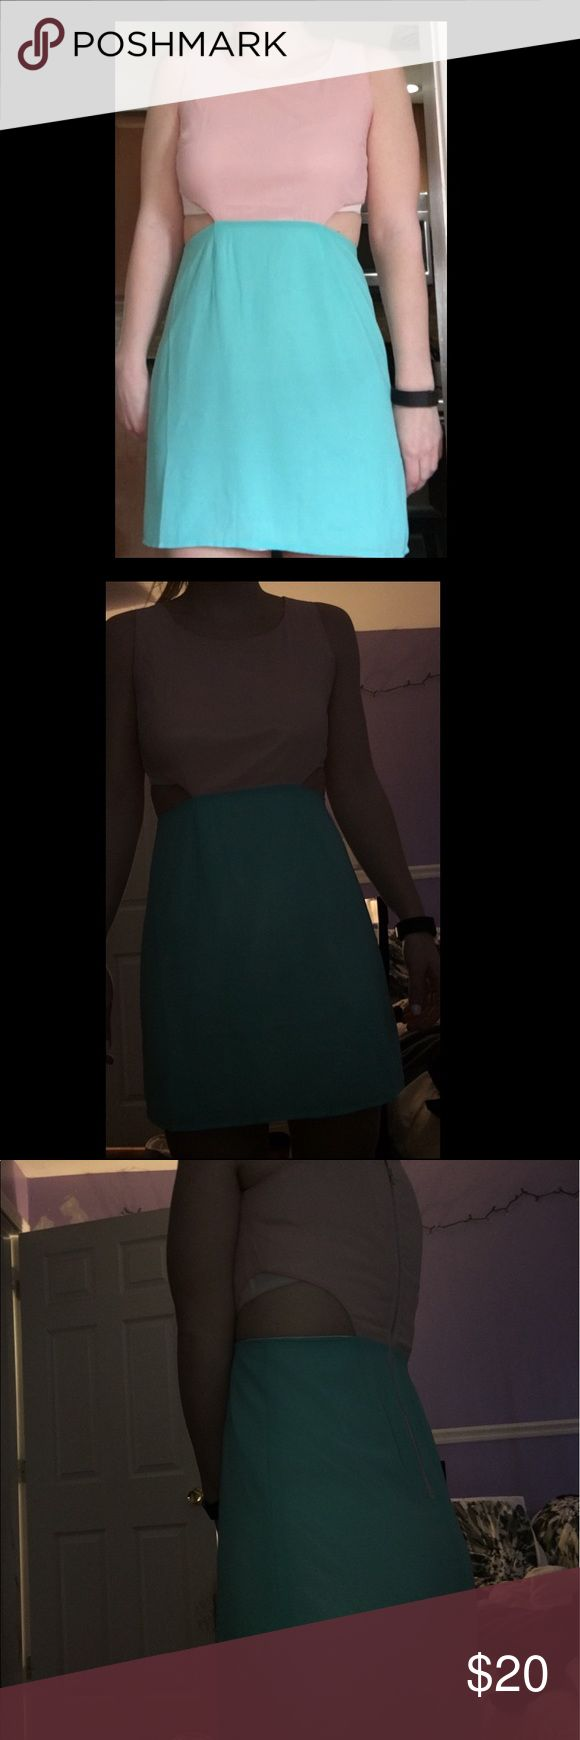 Pink& Seafoam green cut out sides Dress Cute dress perfect for upcoming weather! Bought from TOBI! NEW WITH TAGS. Cut outs on side. Pictures shown you can see the bra but that is because of the type of bra I have on! Price very negotiable! All offers accepted :) Tobi Dresses Mini